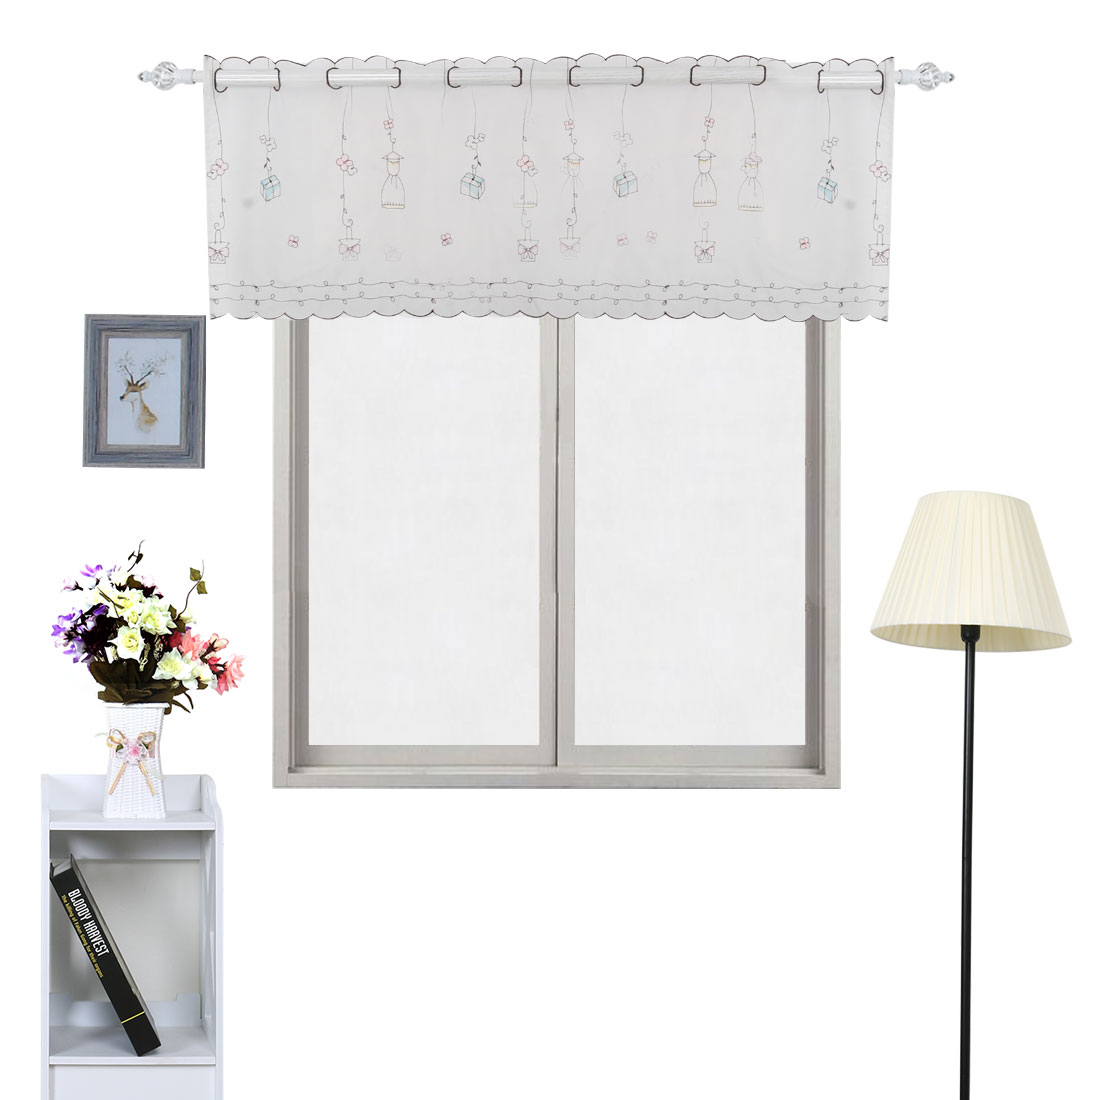 Polyester Flower Pattern Curtain Window Valance Multicolor 60 Inch x 17 Inch - image 2 of 7